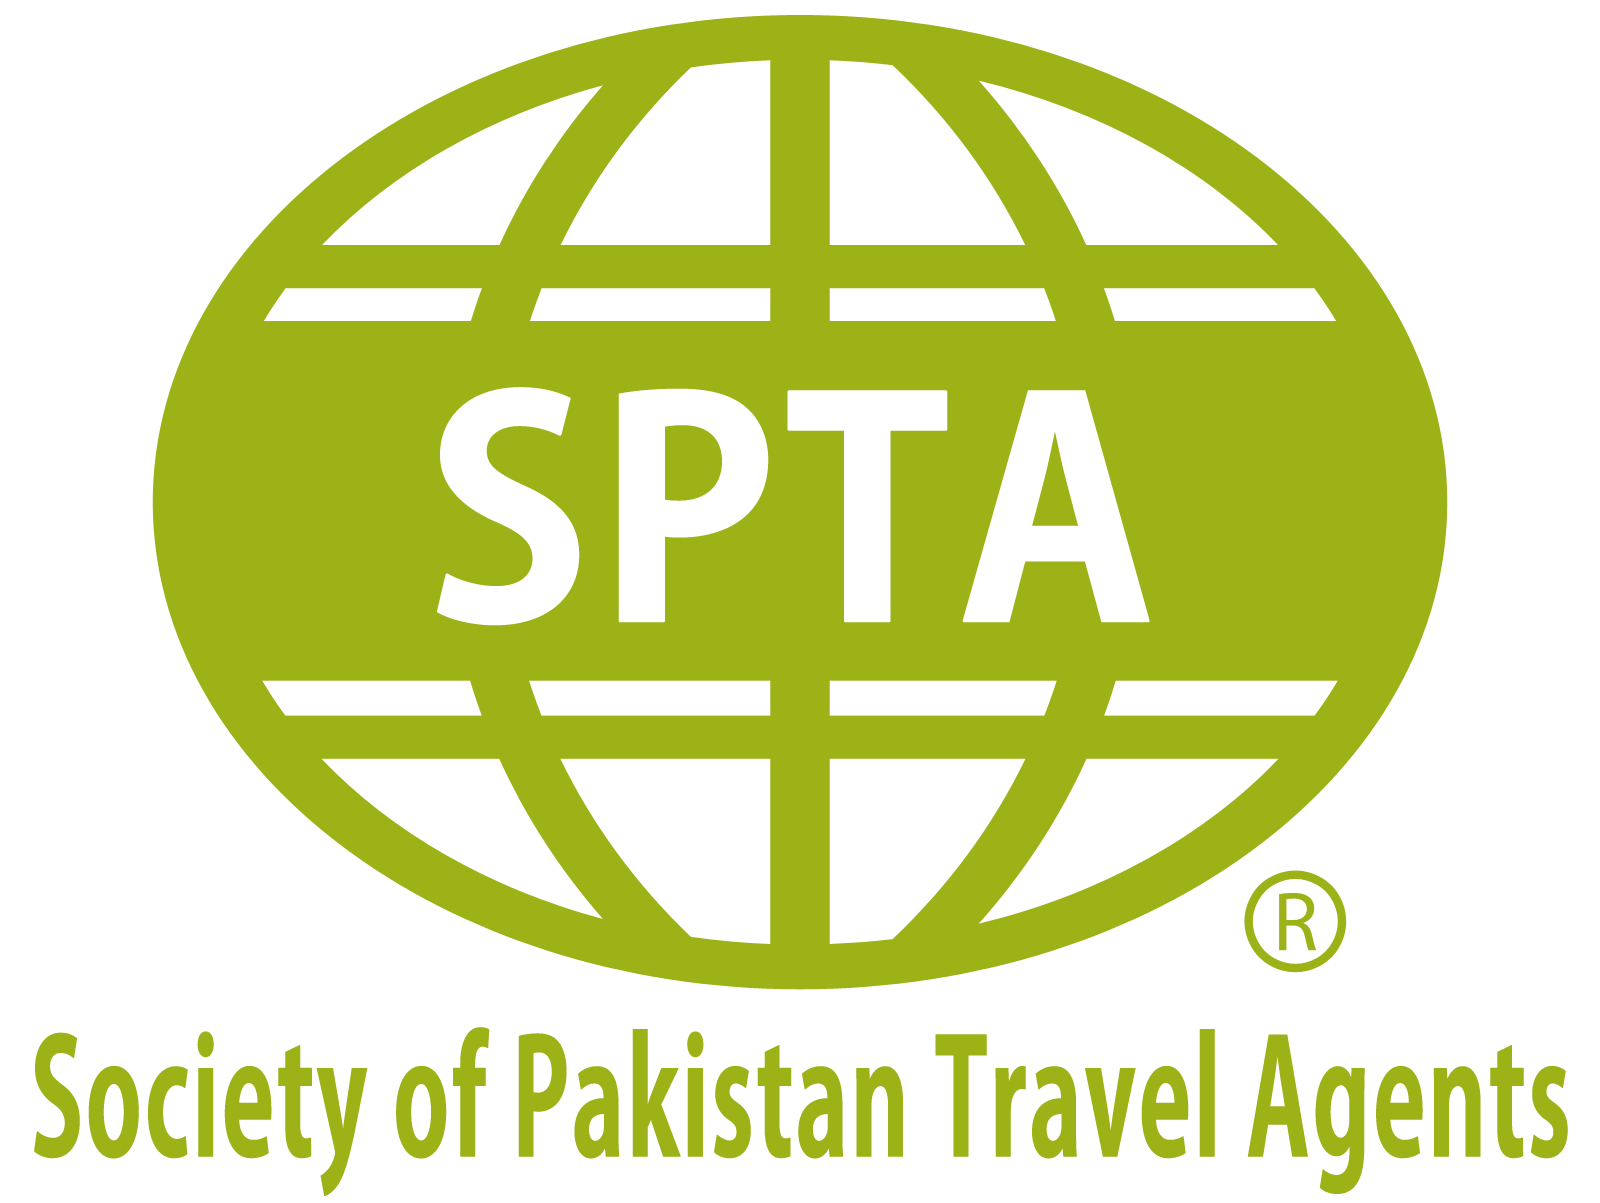 Society of Pakistan Travel Agents Logo